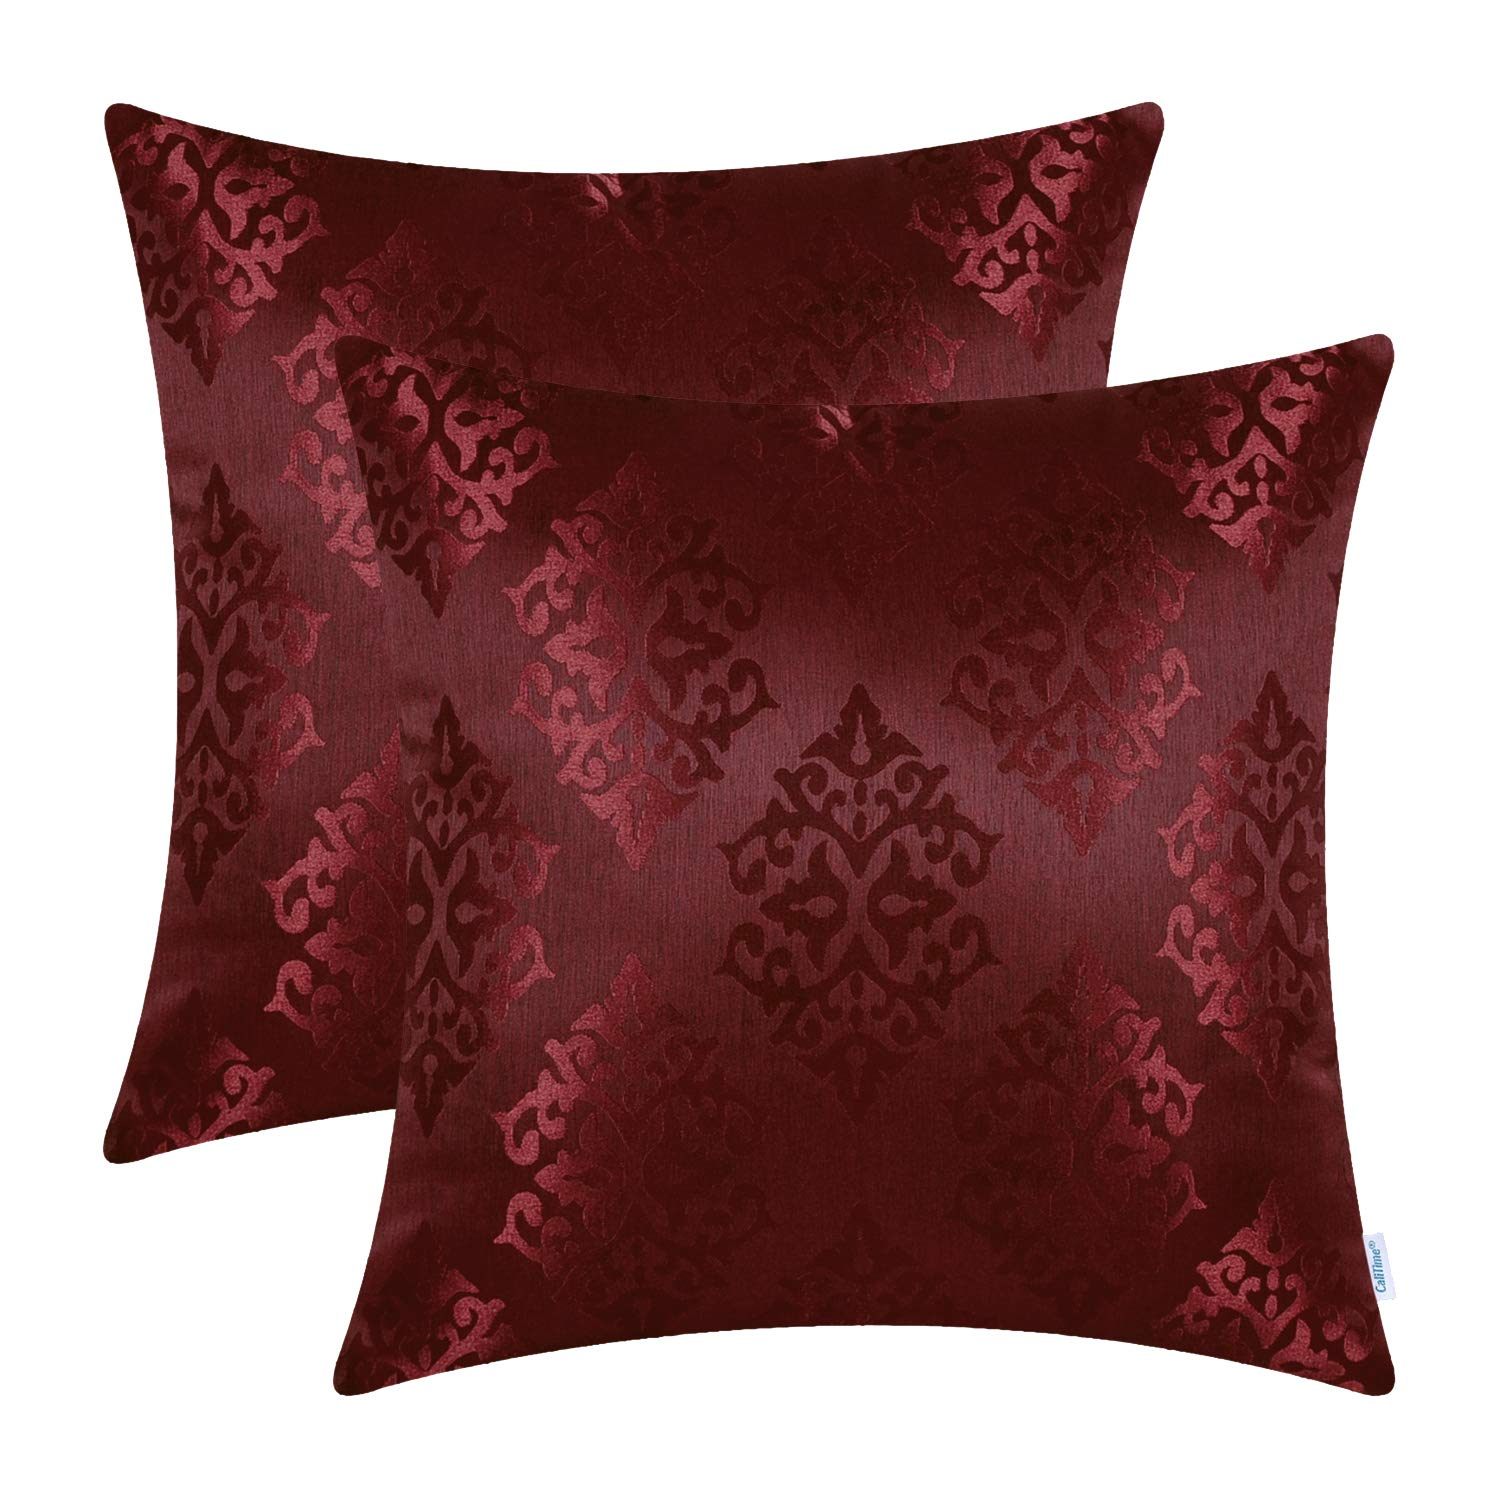 CaliTime Pack of 2 Throw Pillow Covers Cases for Couch Sofa Home Decoration Vintage Damask Shining & Dull Contrast 18 X 18 Inches Burgundy